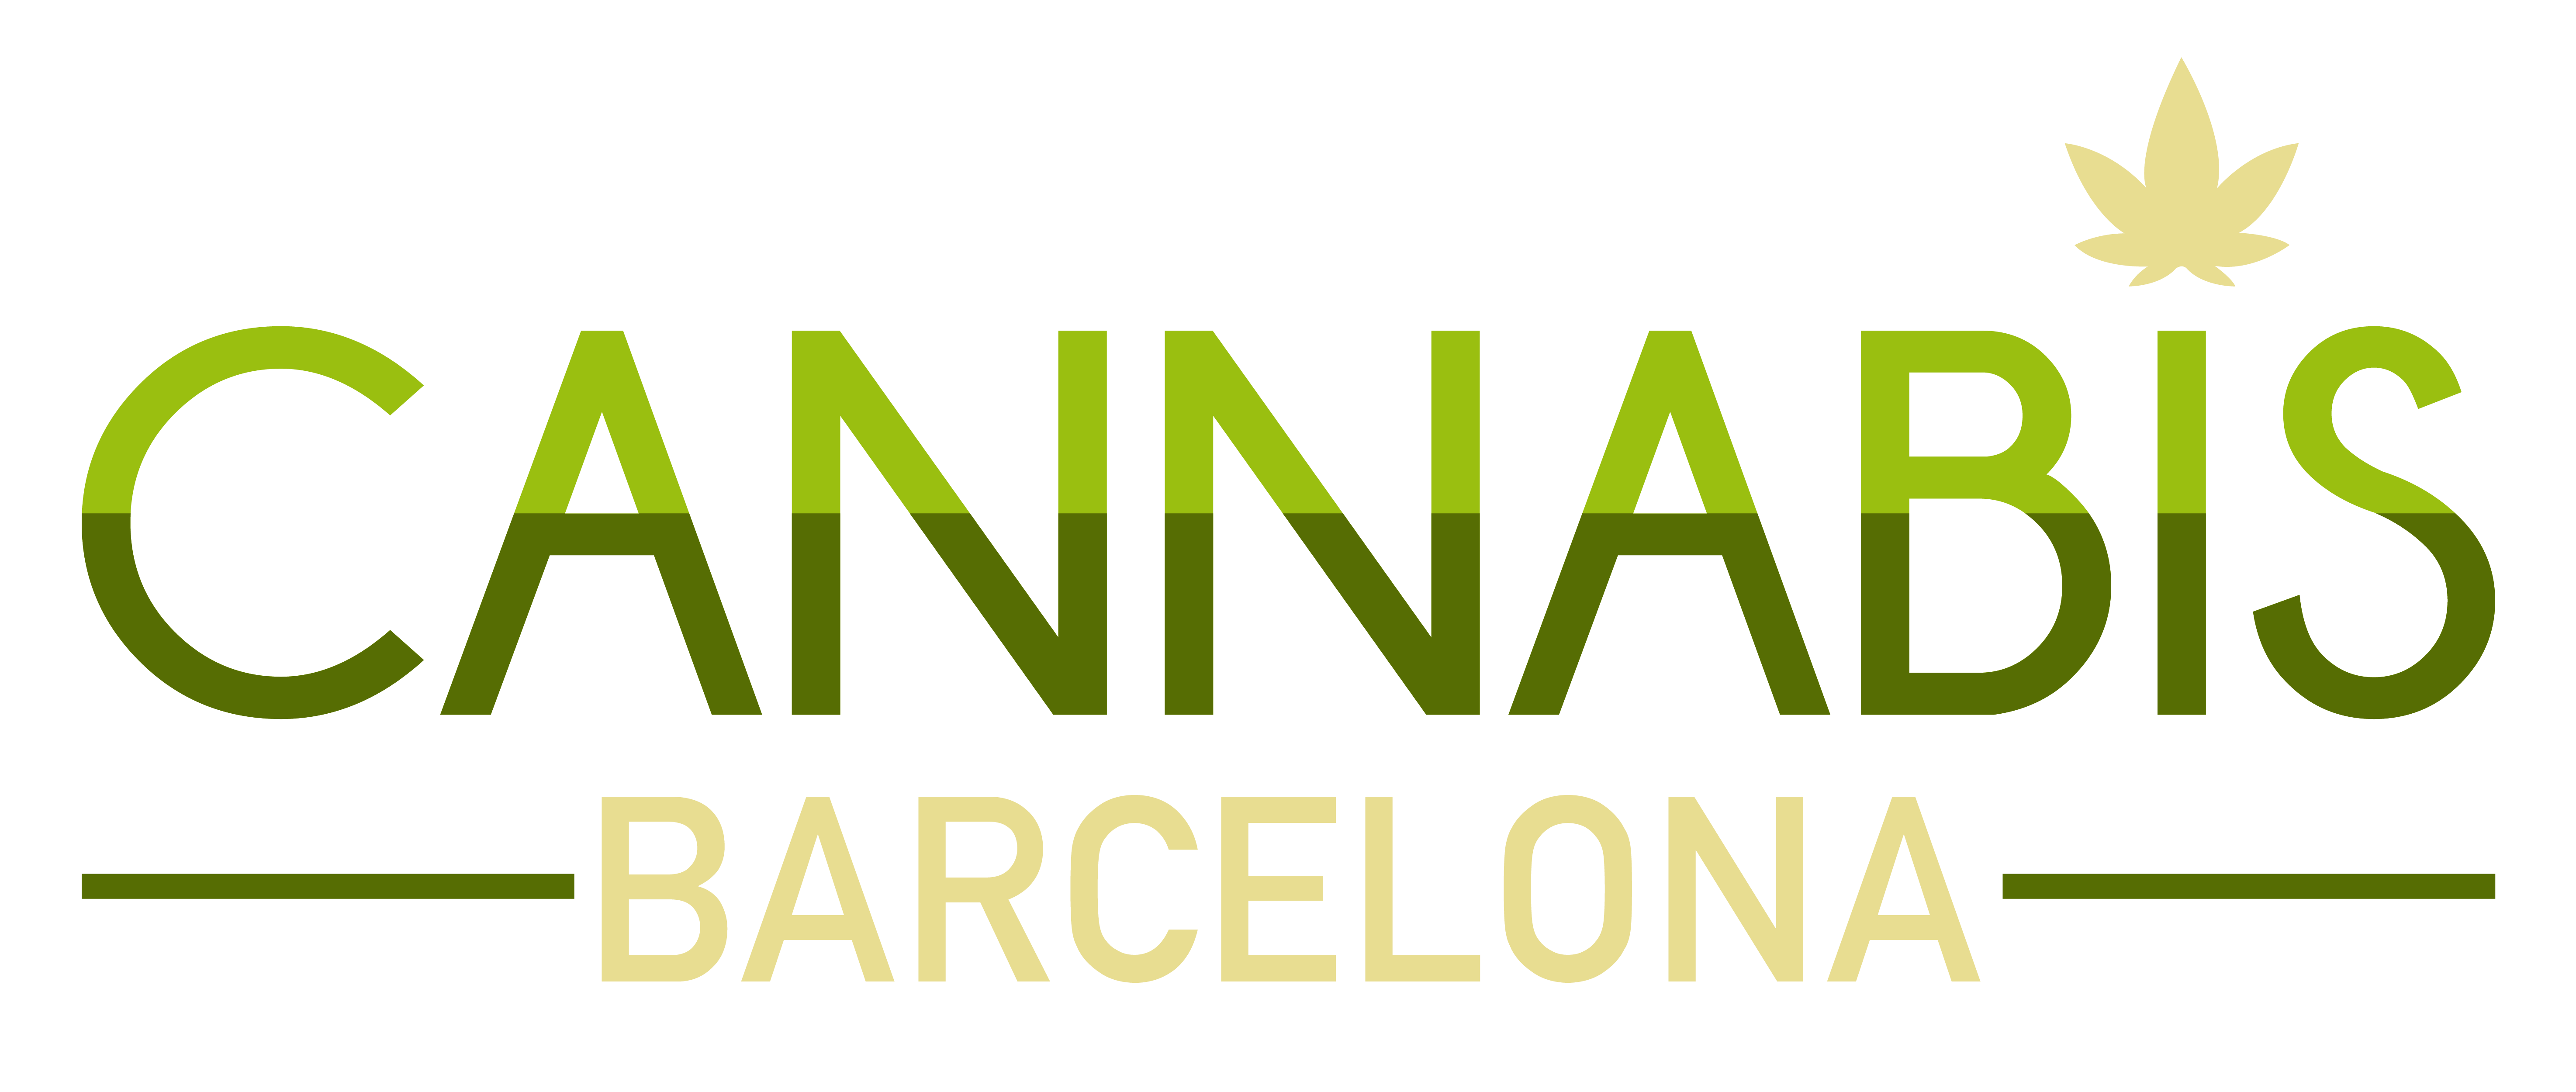 cannabis barcelona | Weed Girls